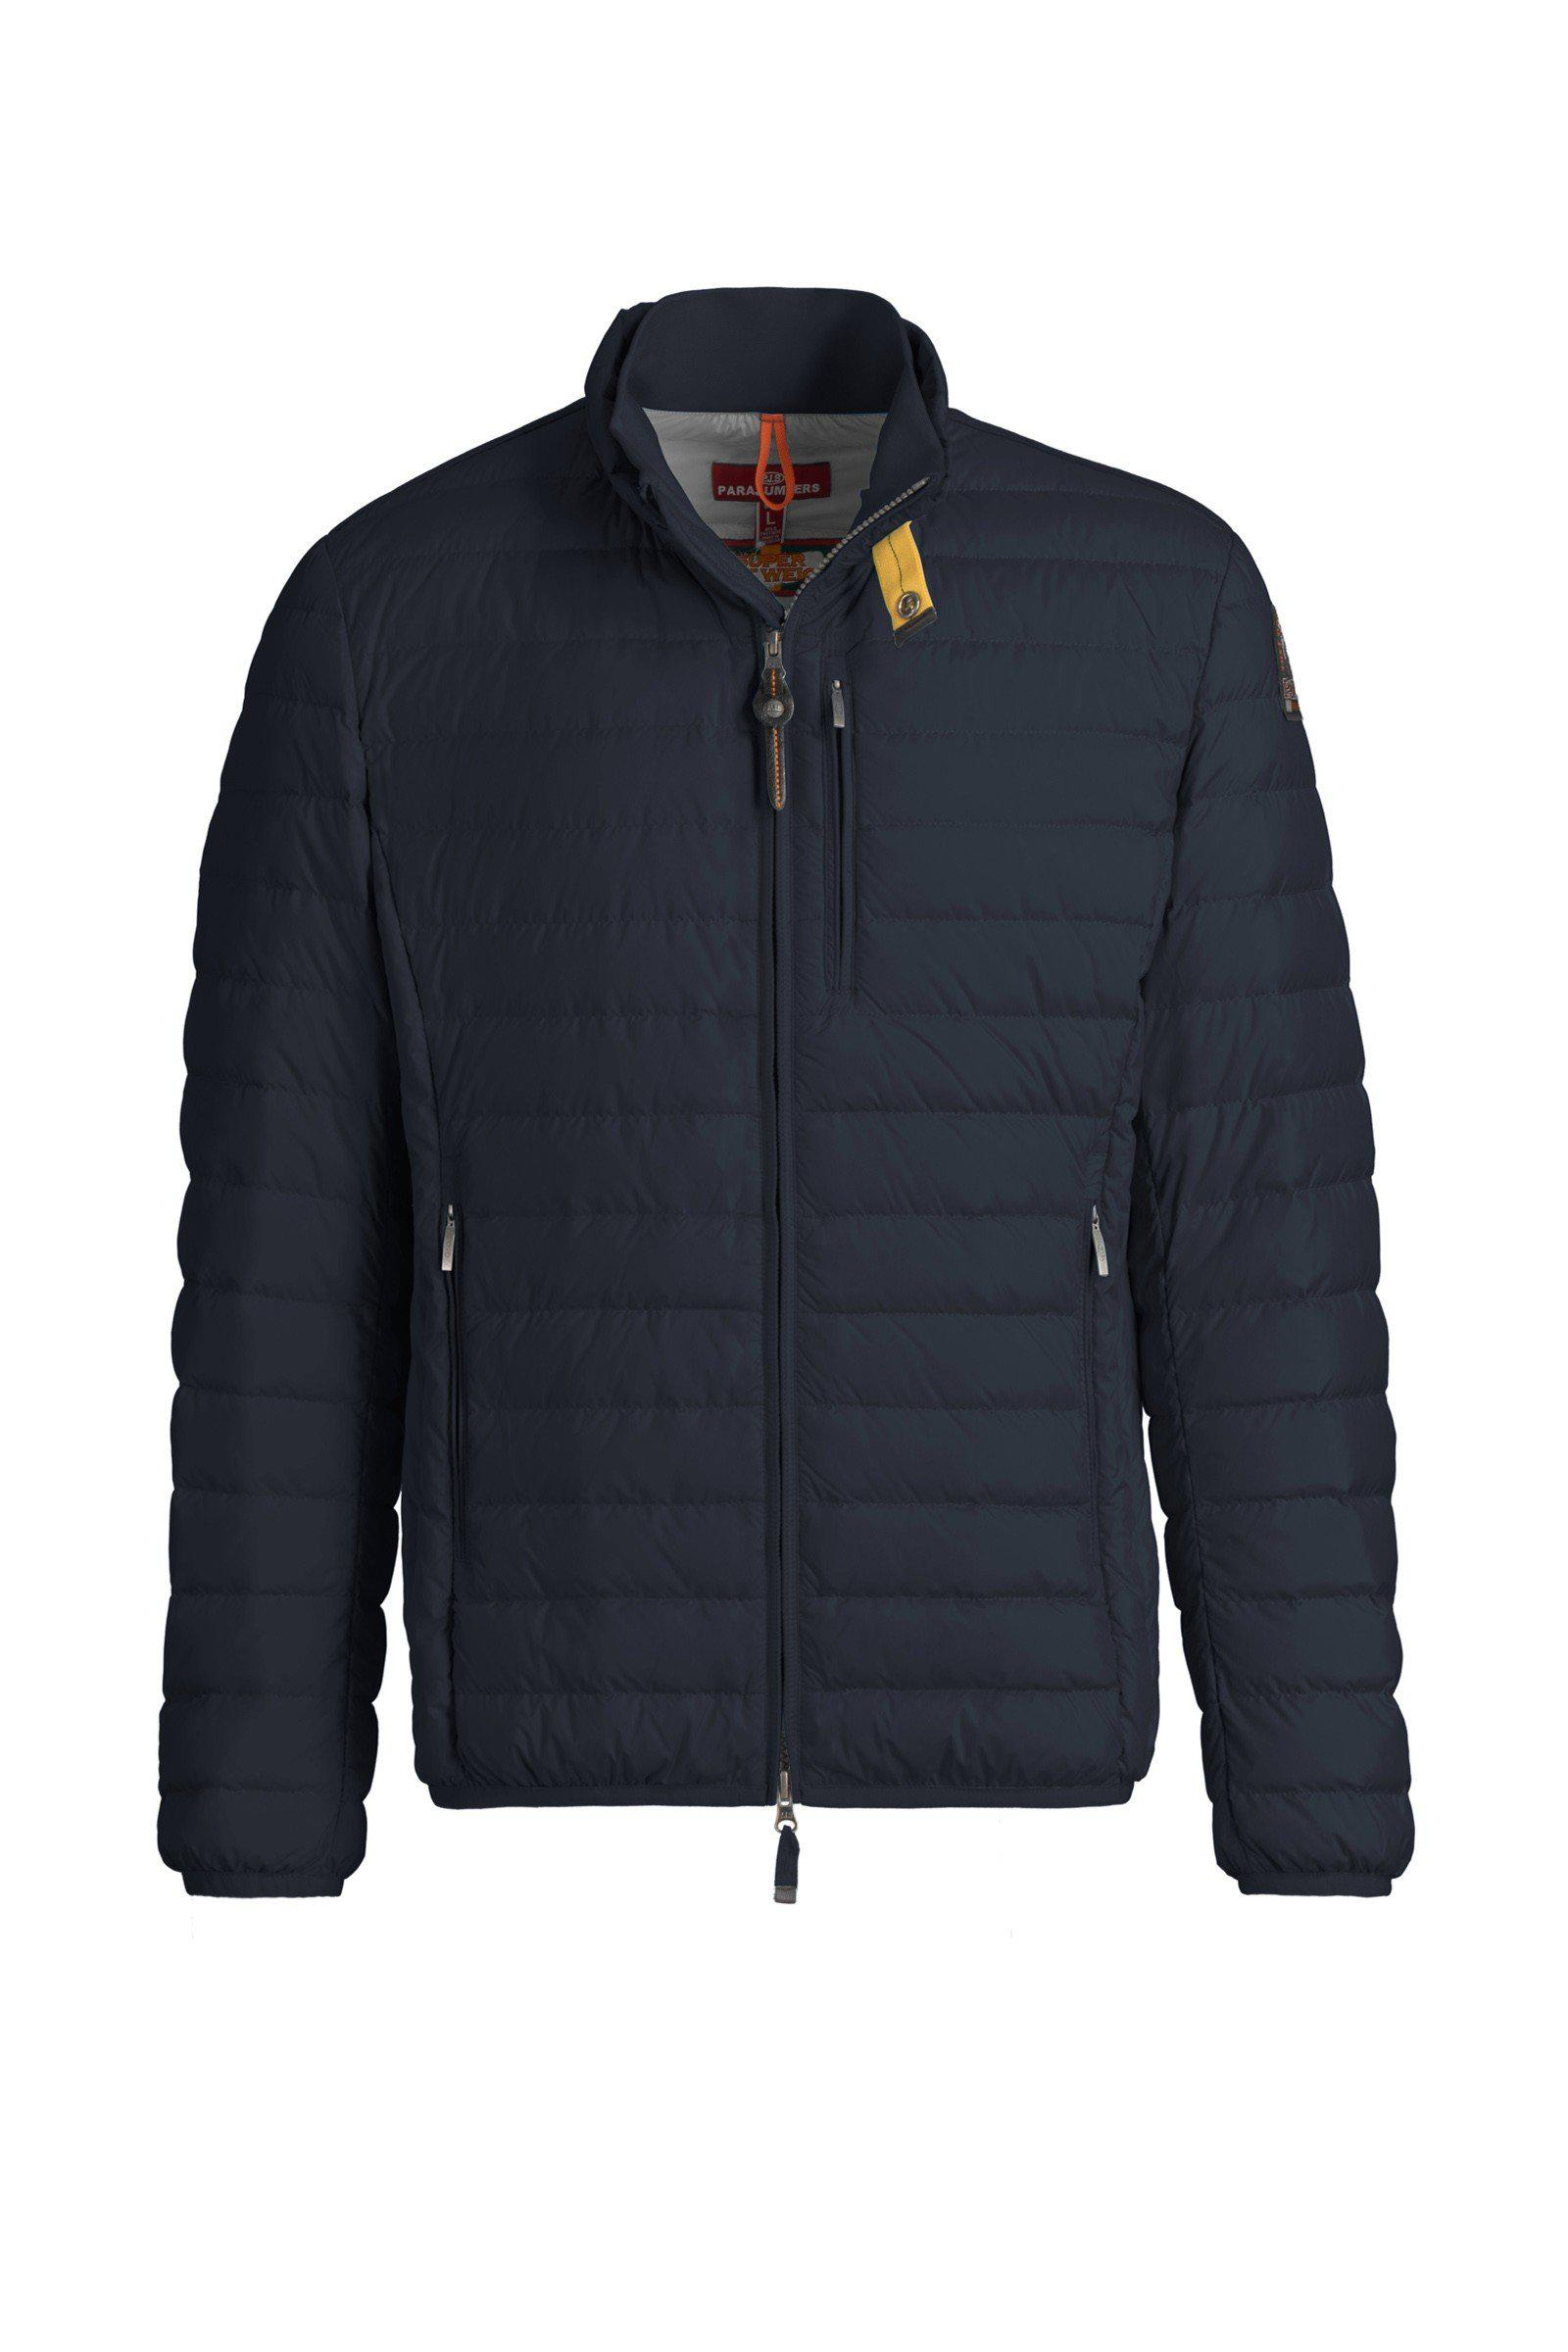 Parajumpers Ugo Puffer Jacket-Jackets-Classic fashion CF13-S-Navy-Classic fashion CF13